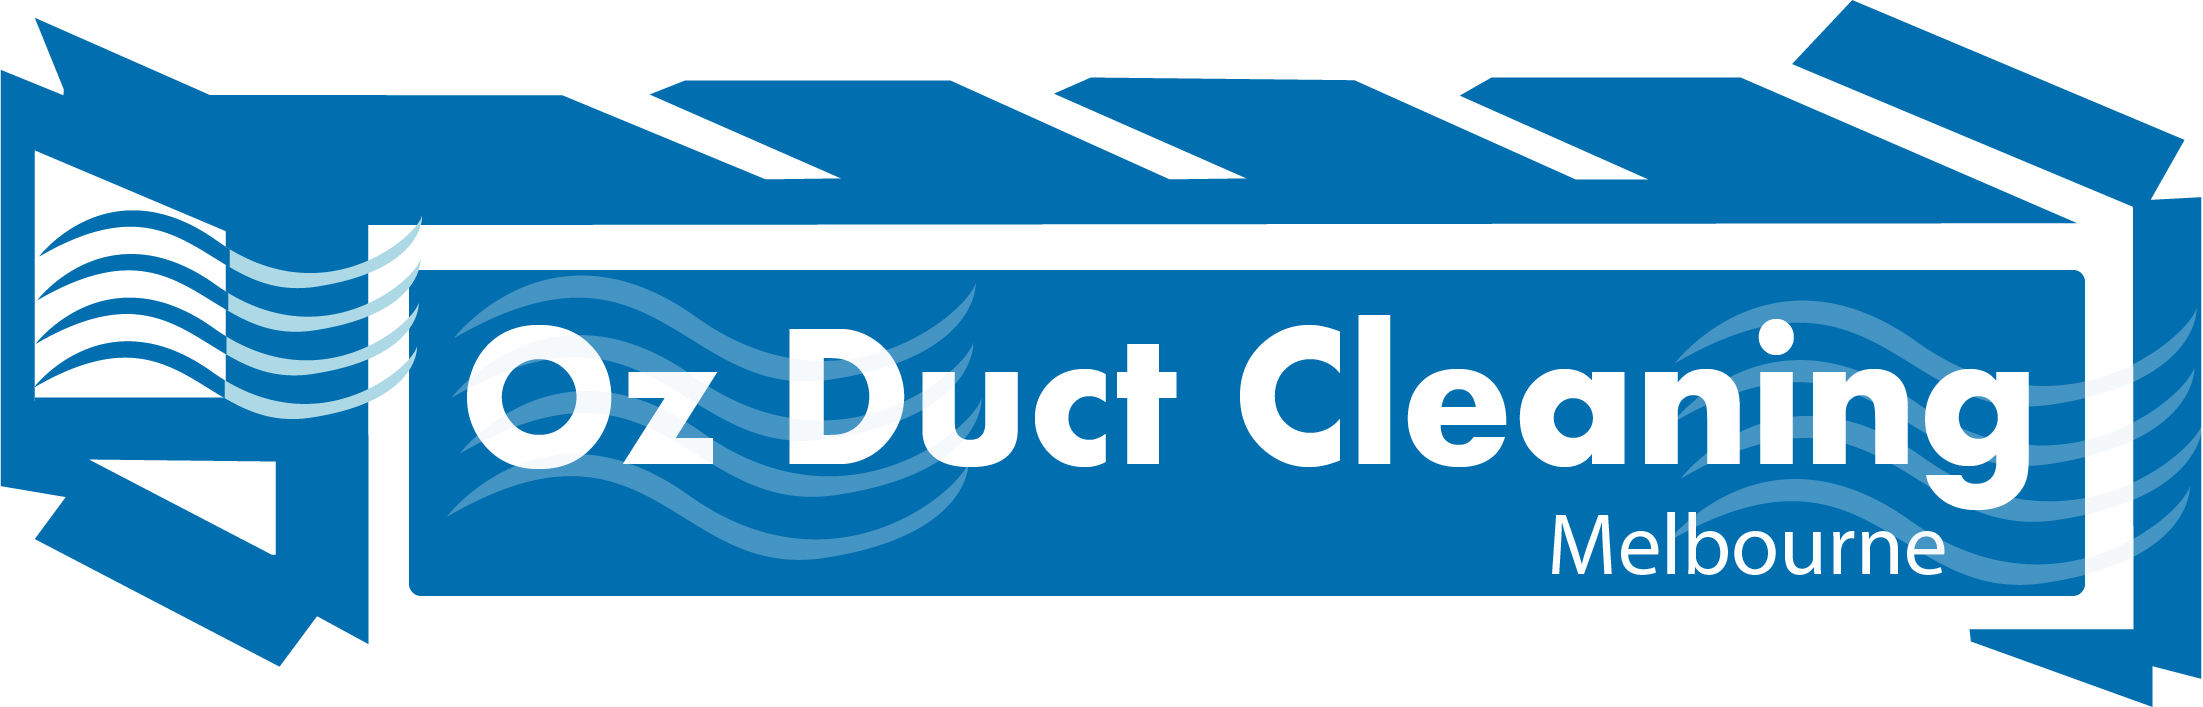 OZ Duct Cleaning Melbourne Comoany